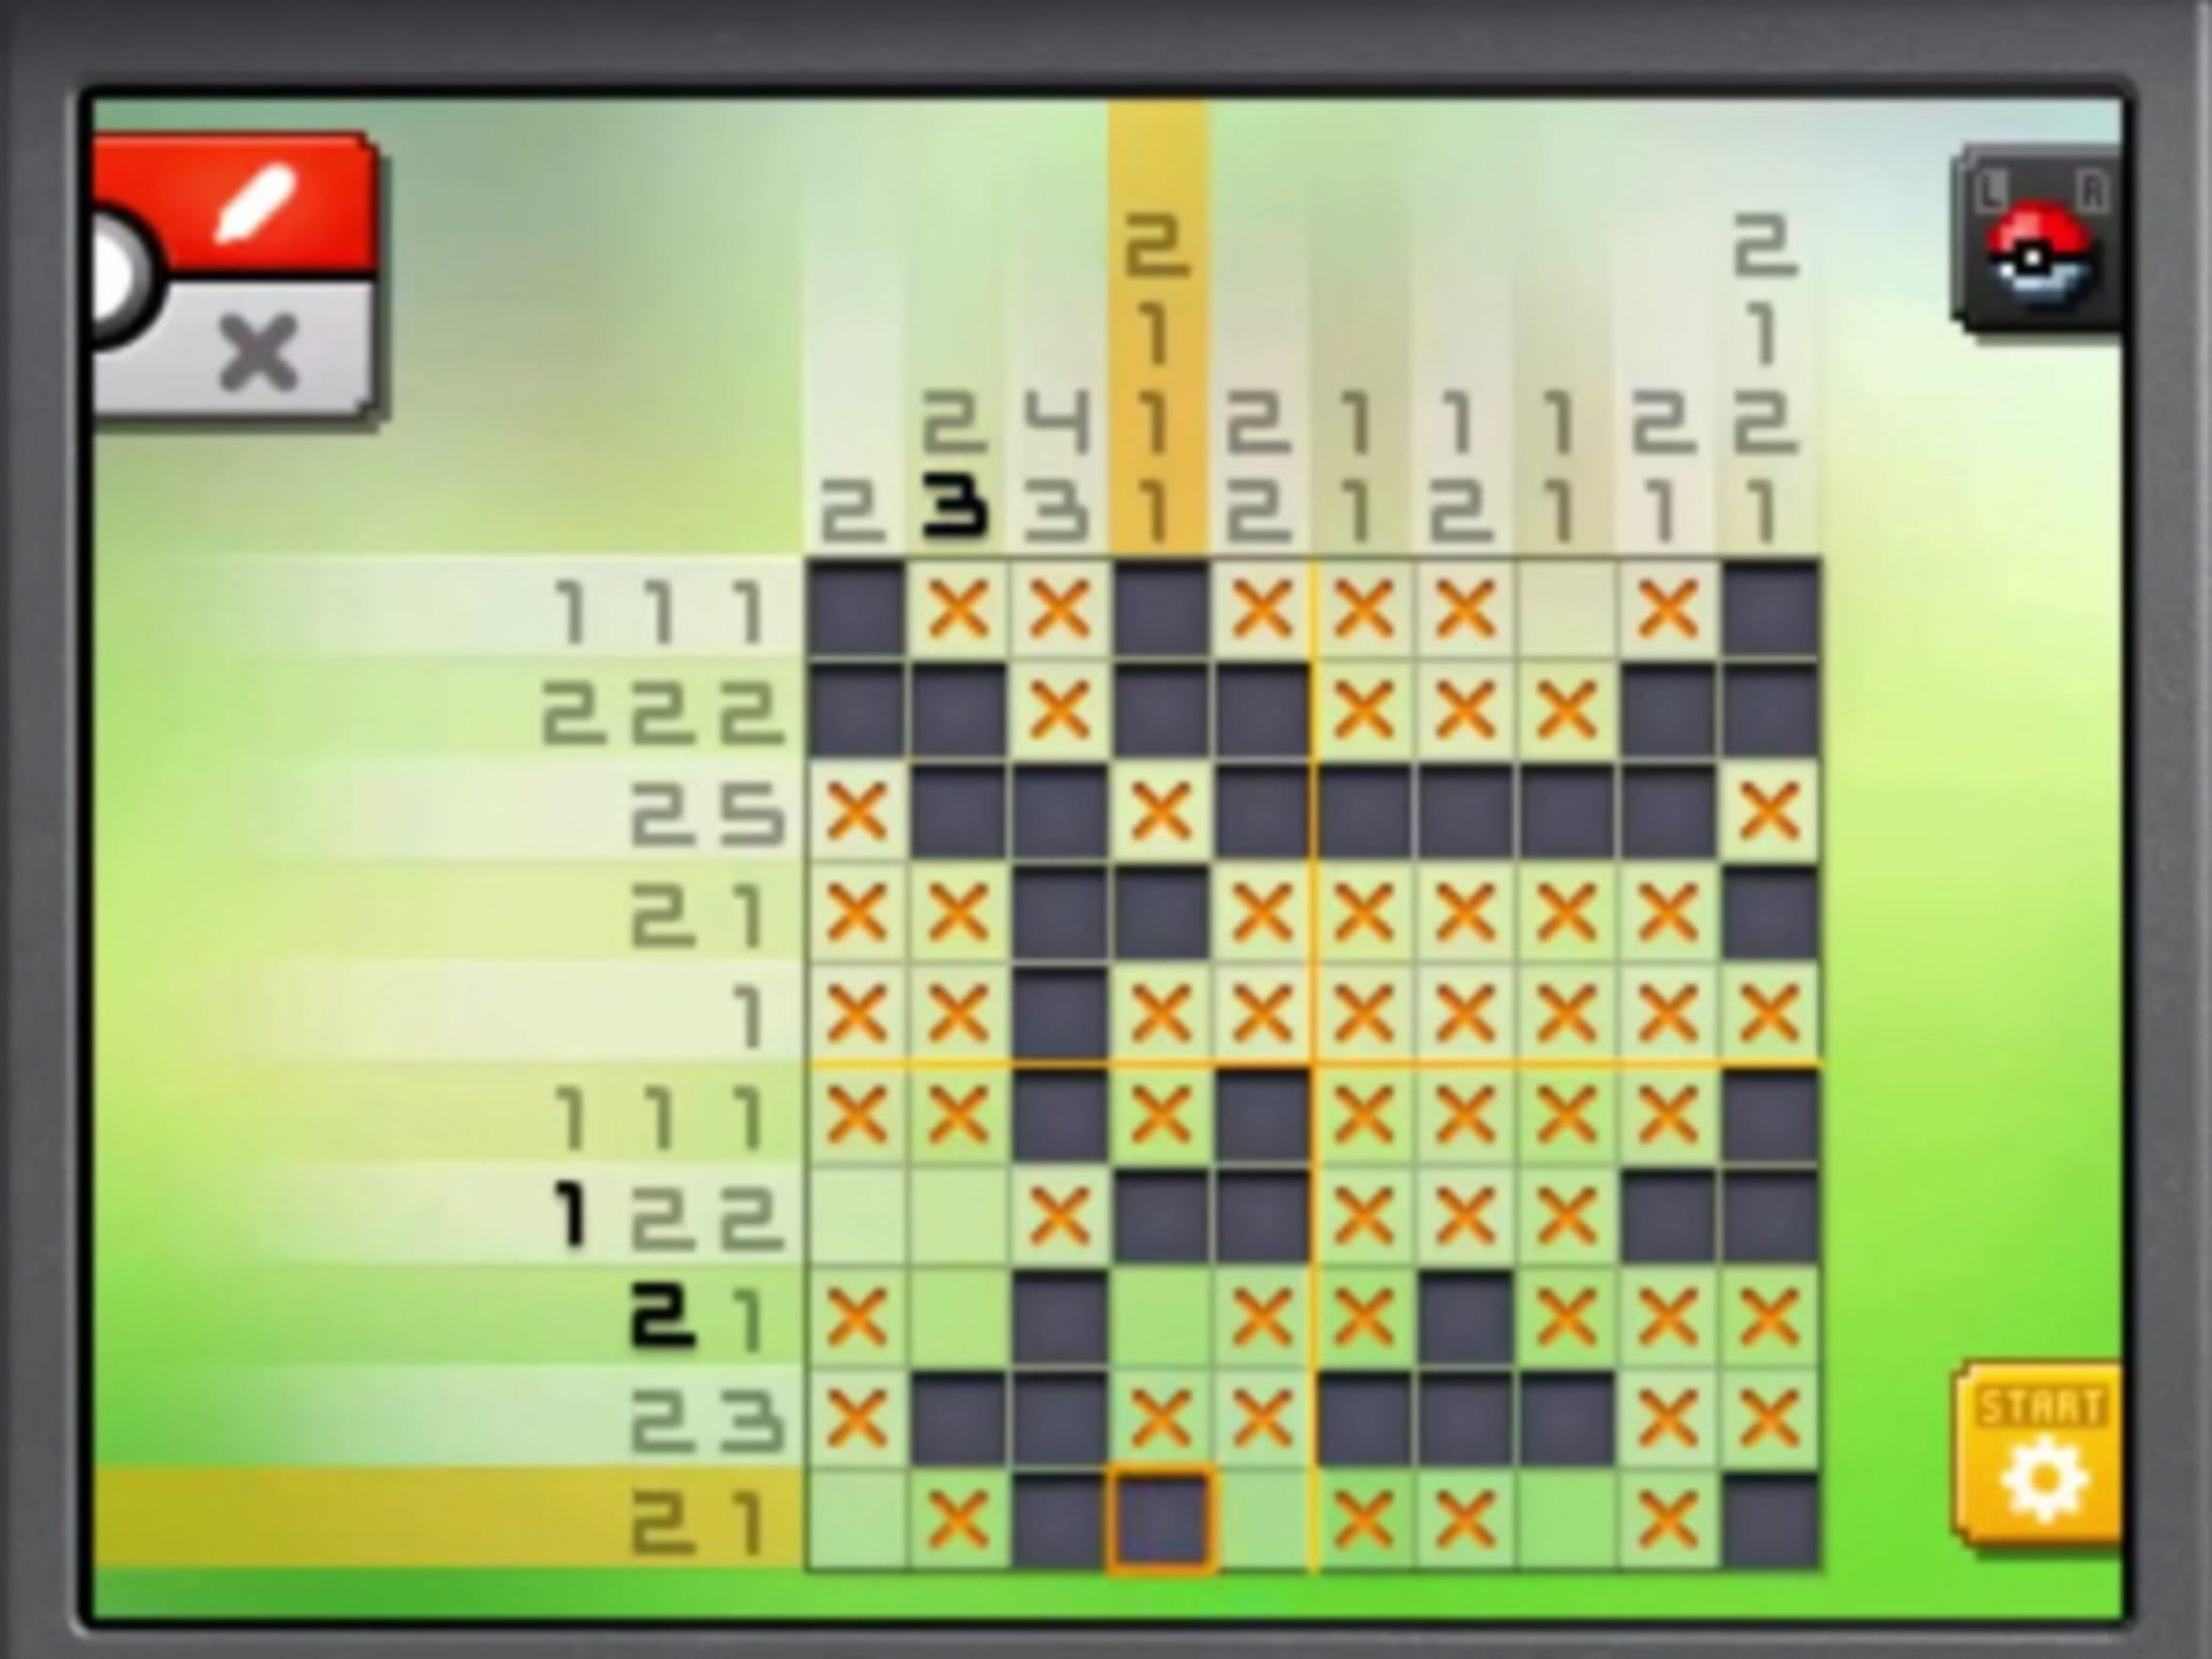 Pokemon Picross lets you solve pixel puzzles shaped like monsters and items from the Pokemon world by using numbers along a grid as clues.